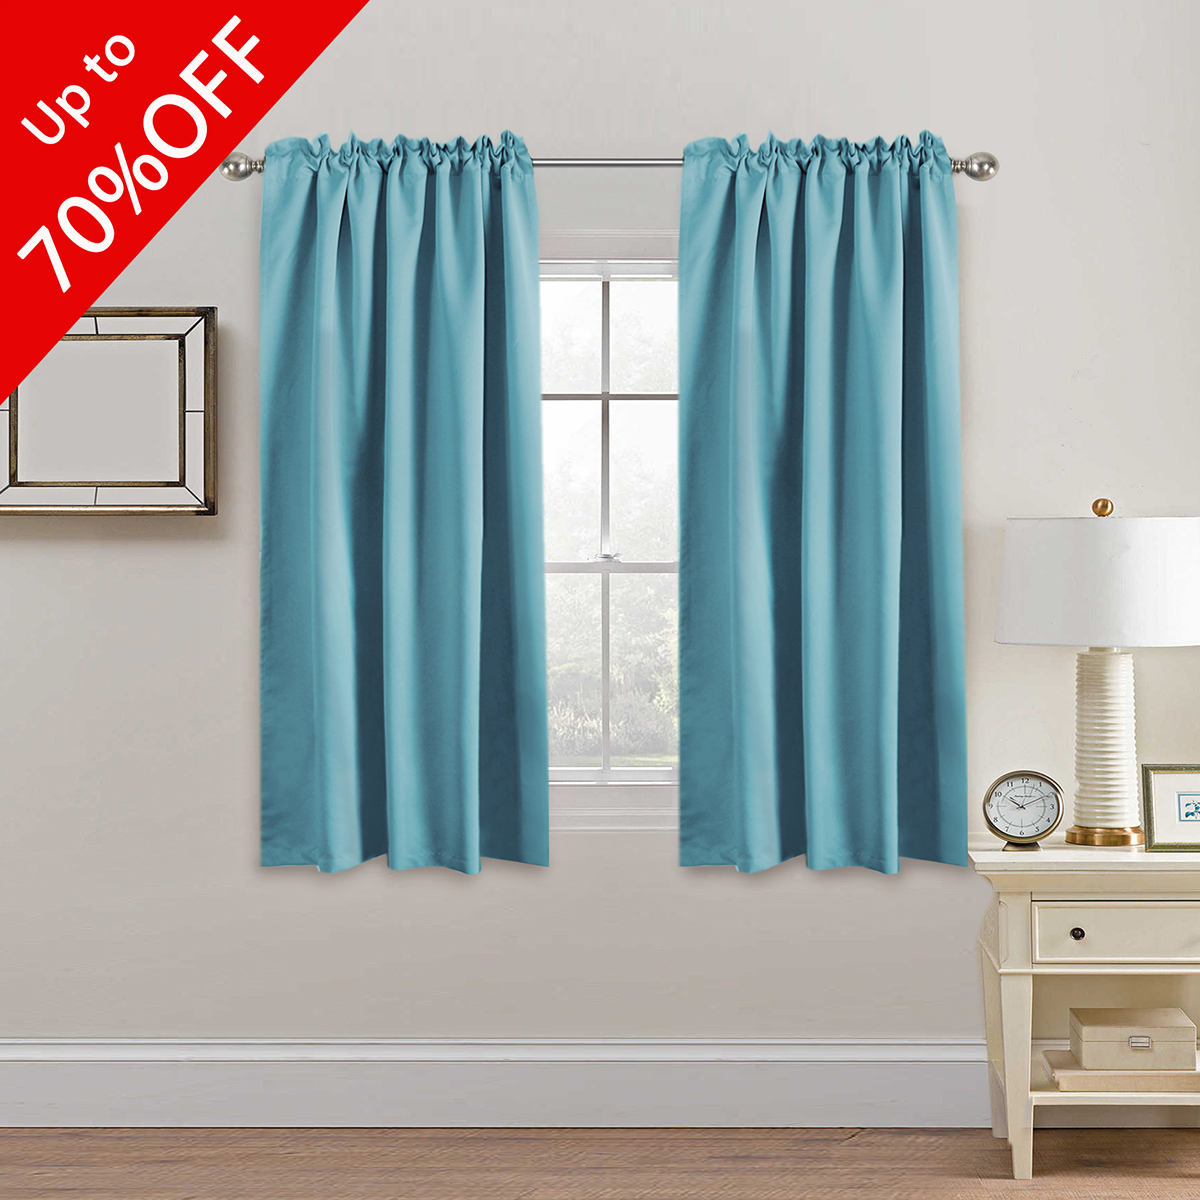 extra blackout curtain panels insulated thermal curtains for bedroom 63 inch curtain panels pair back tab rod pocket drapes for living room